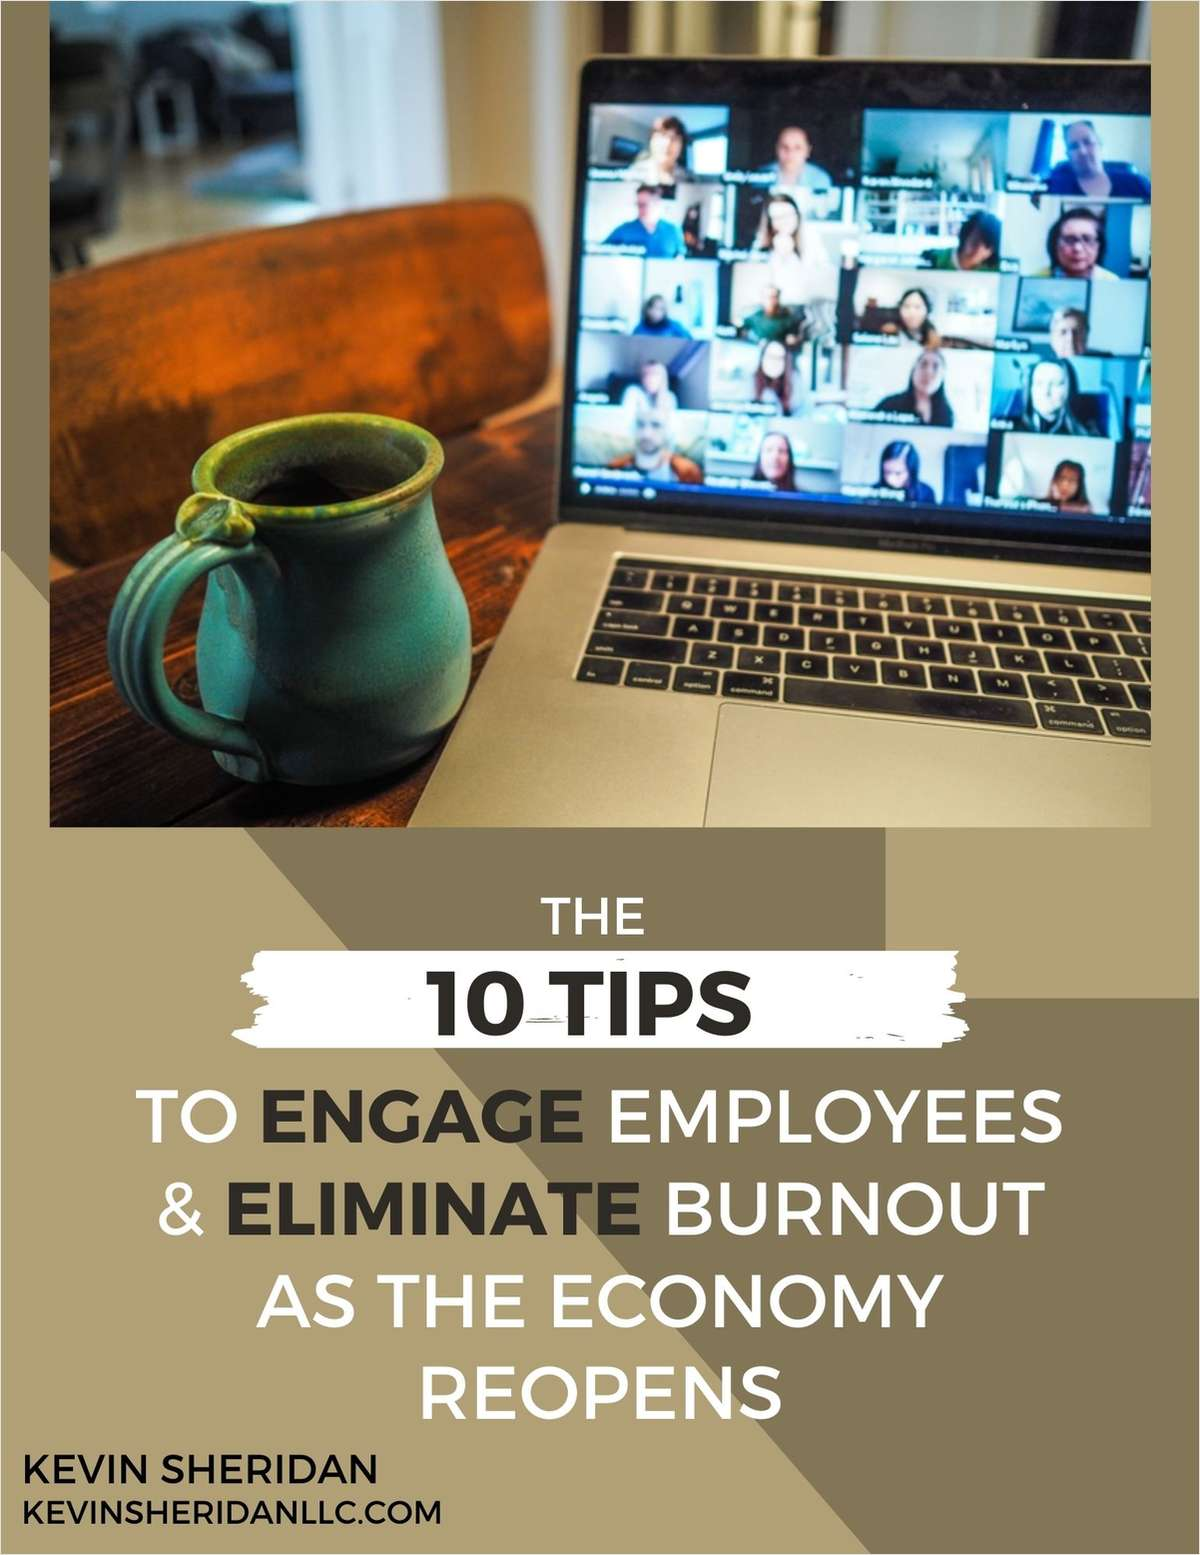 The 10 Tips To Engage Employees & Eliminate Burnout As The Economy Reopens